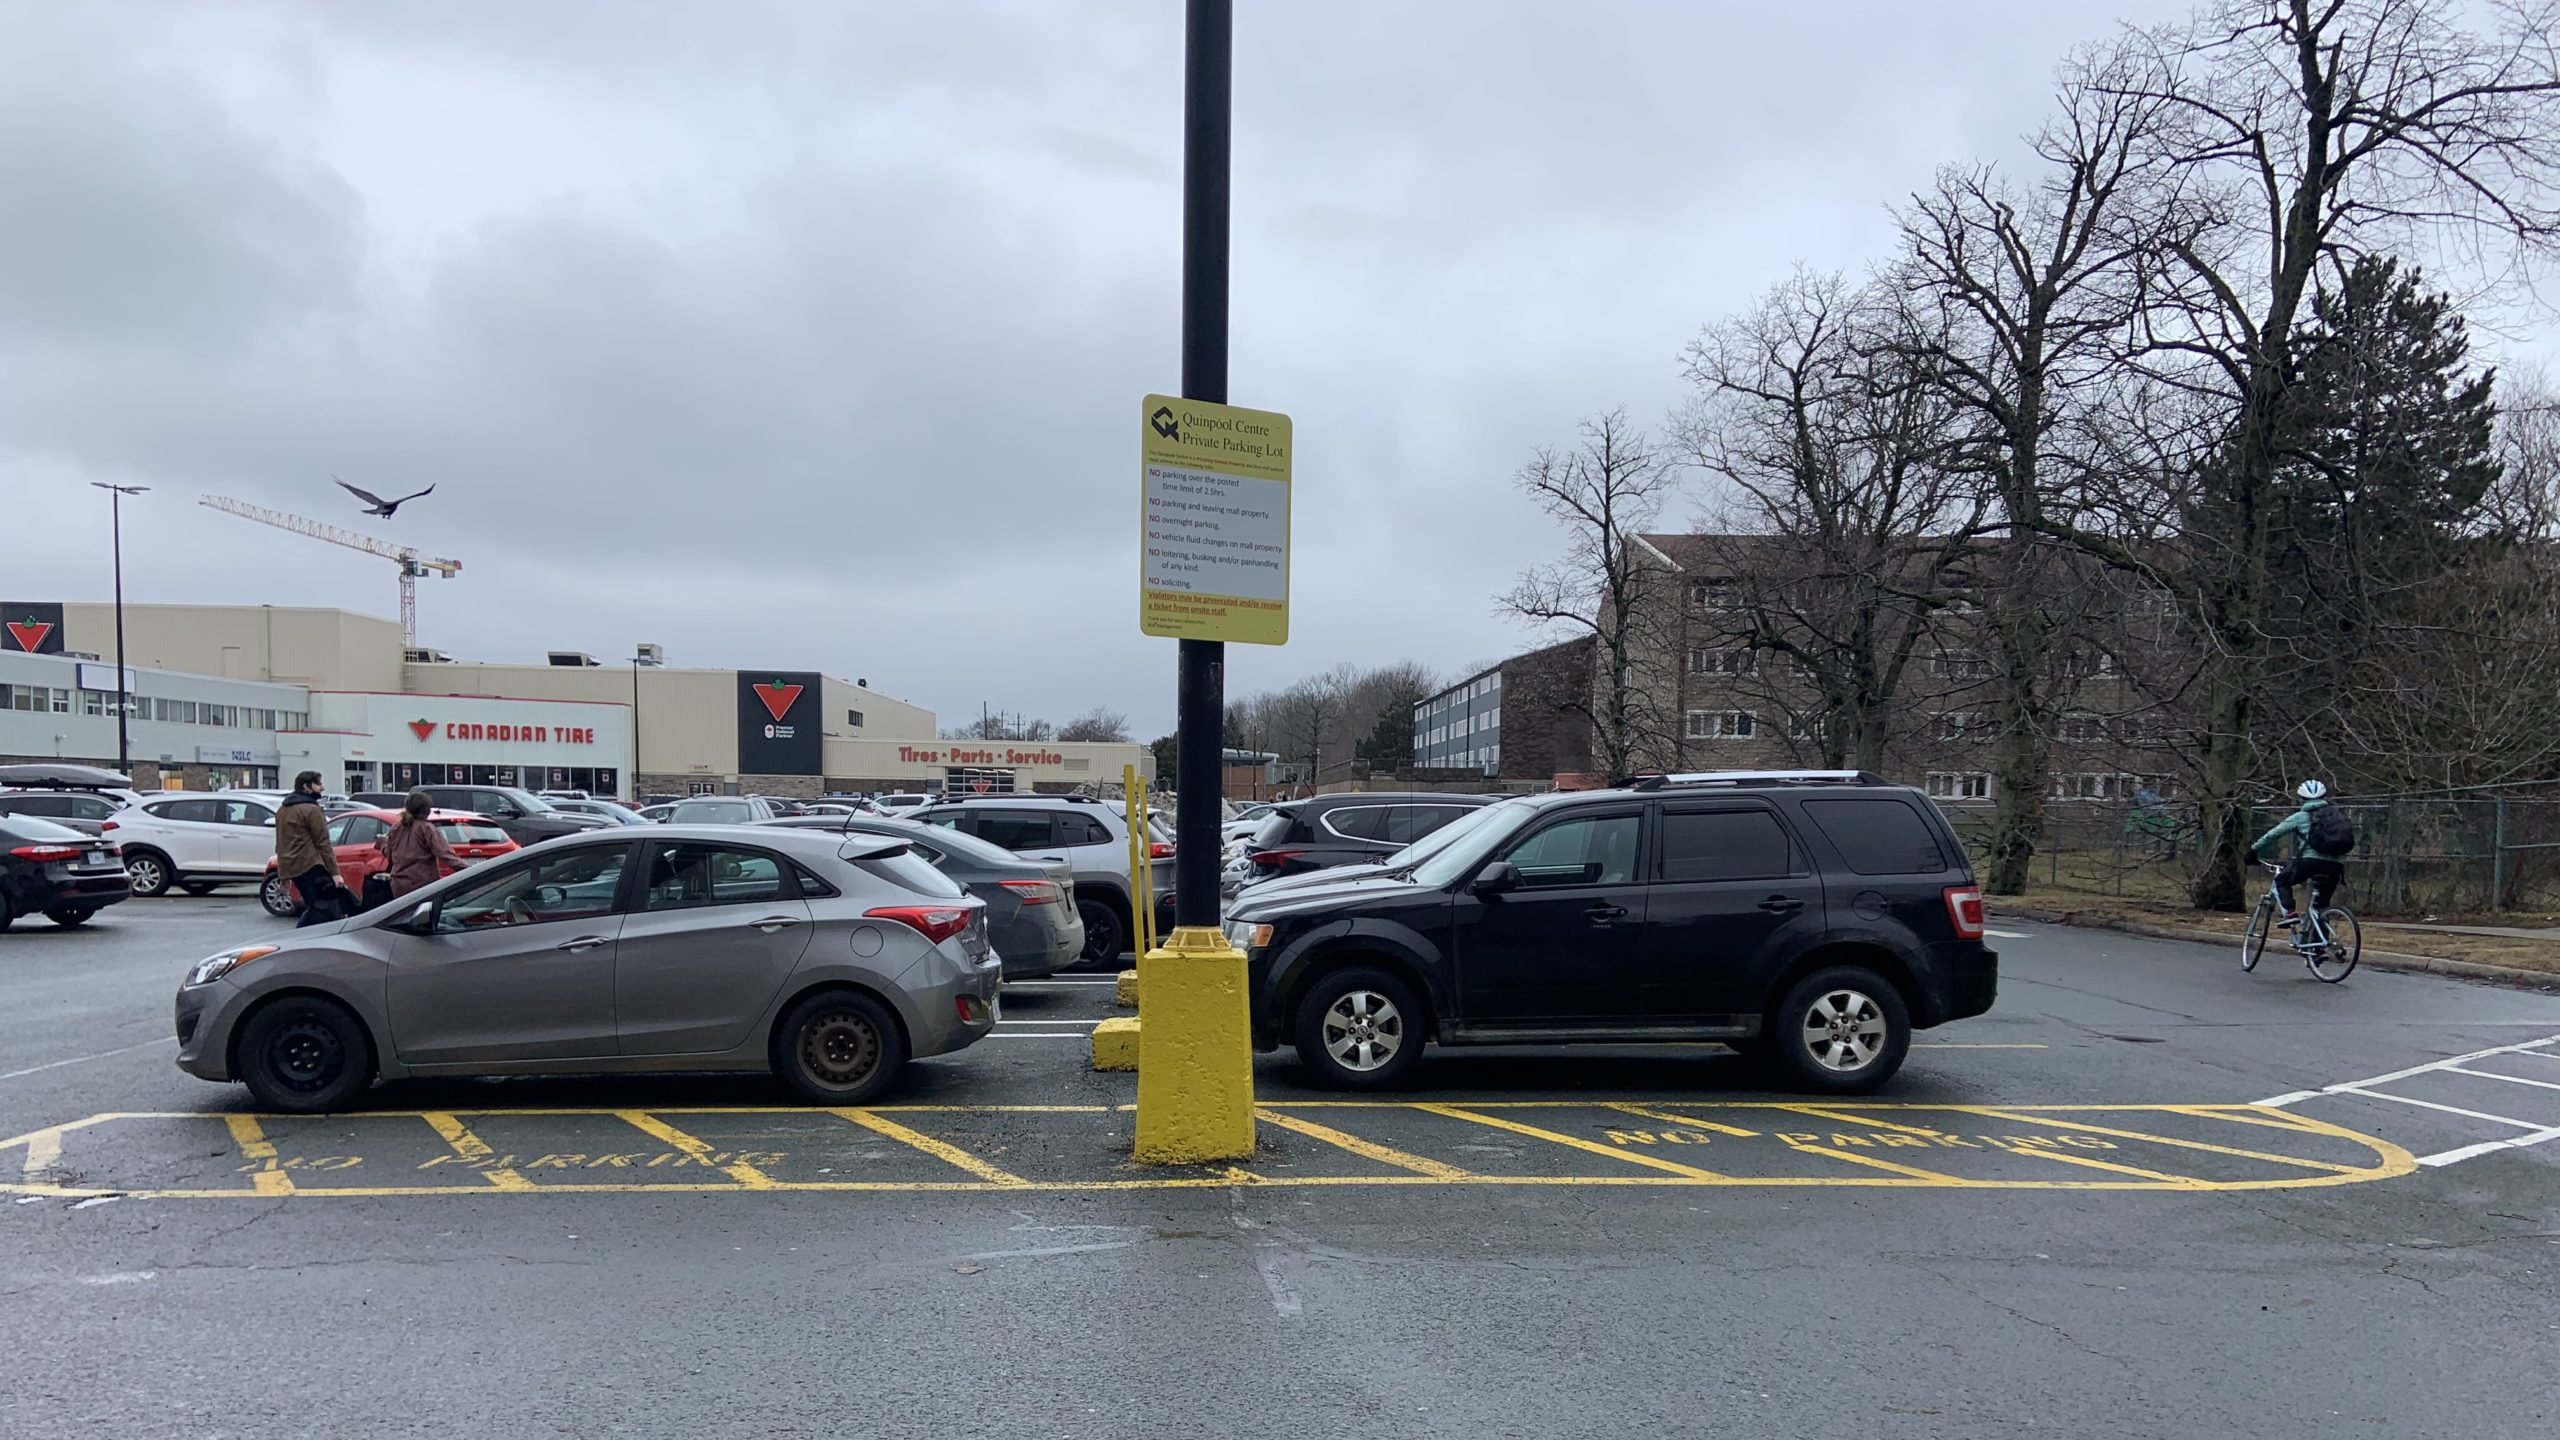 Michael Szego says that parking lots should be more sustainable and conscious of pedestrians and active transportation users.